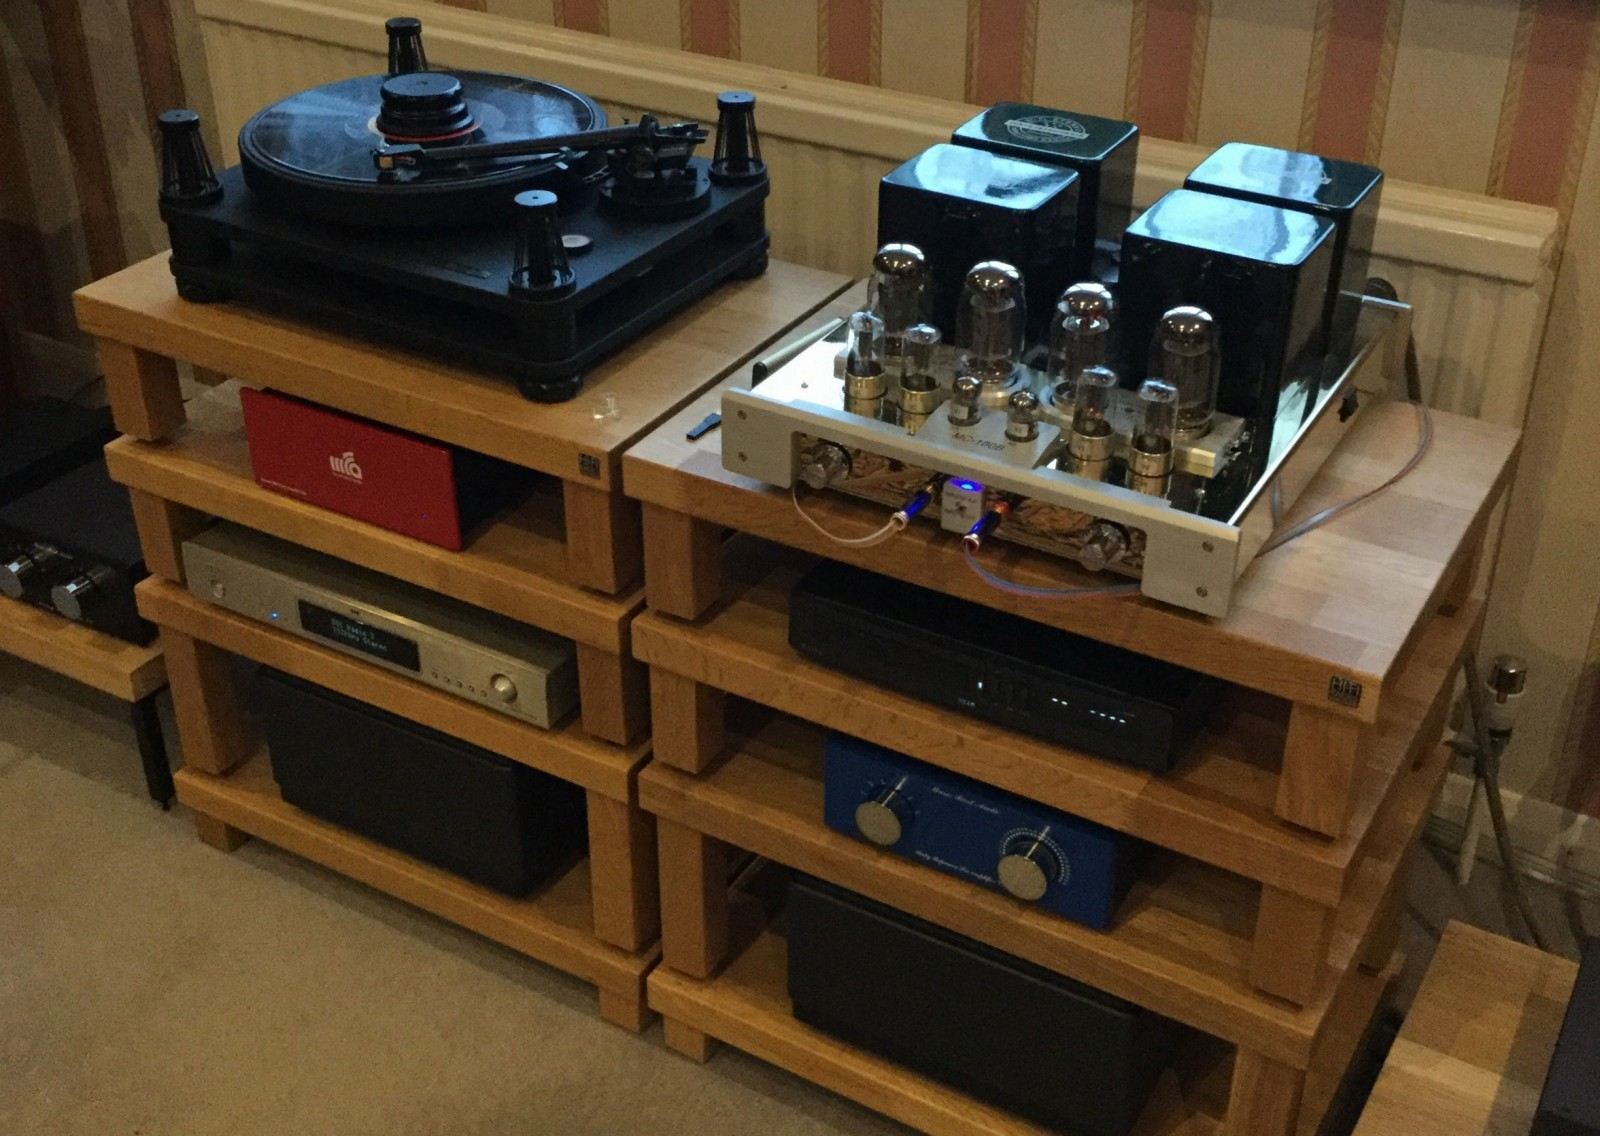 Some (Possibly) Controversial Thoughts on Vinyl Records and Computer Audio – Guest post by David King